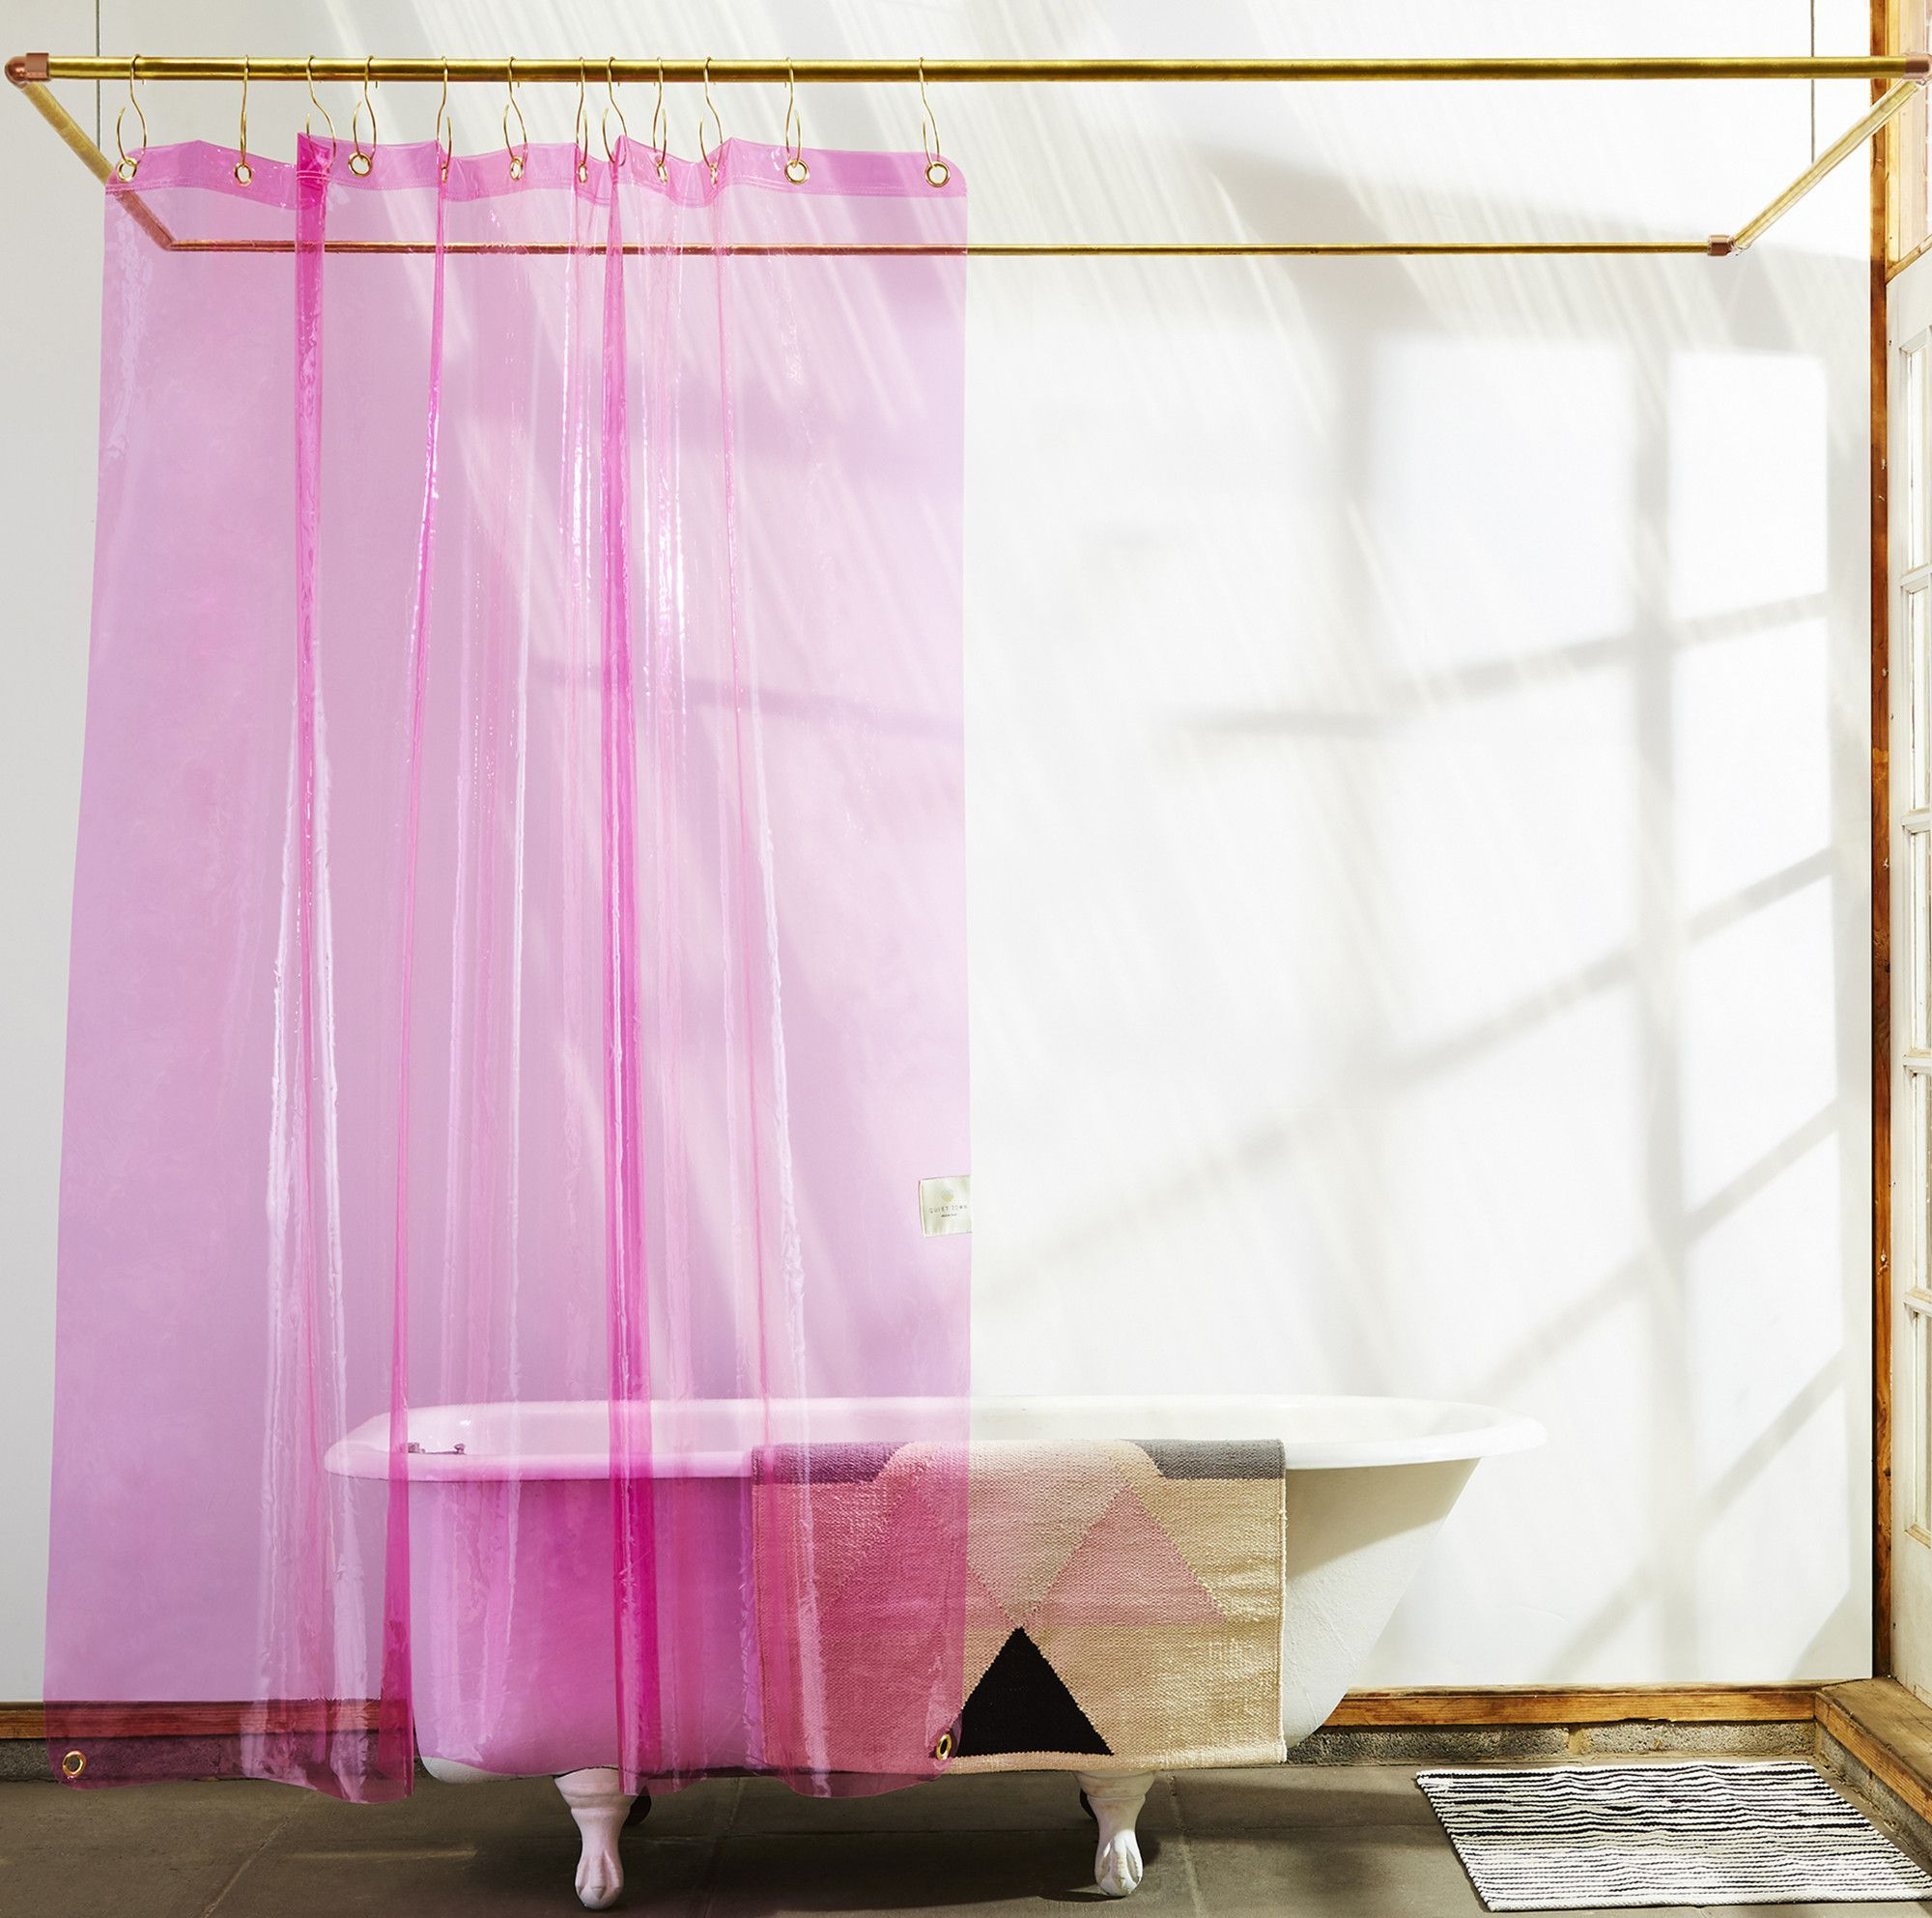 Sun Shower Clear Pink Non Toxic Liner Quiet Town Pink Shower Curtains Vinyl Shower Curtains Small Bathroom Decor